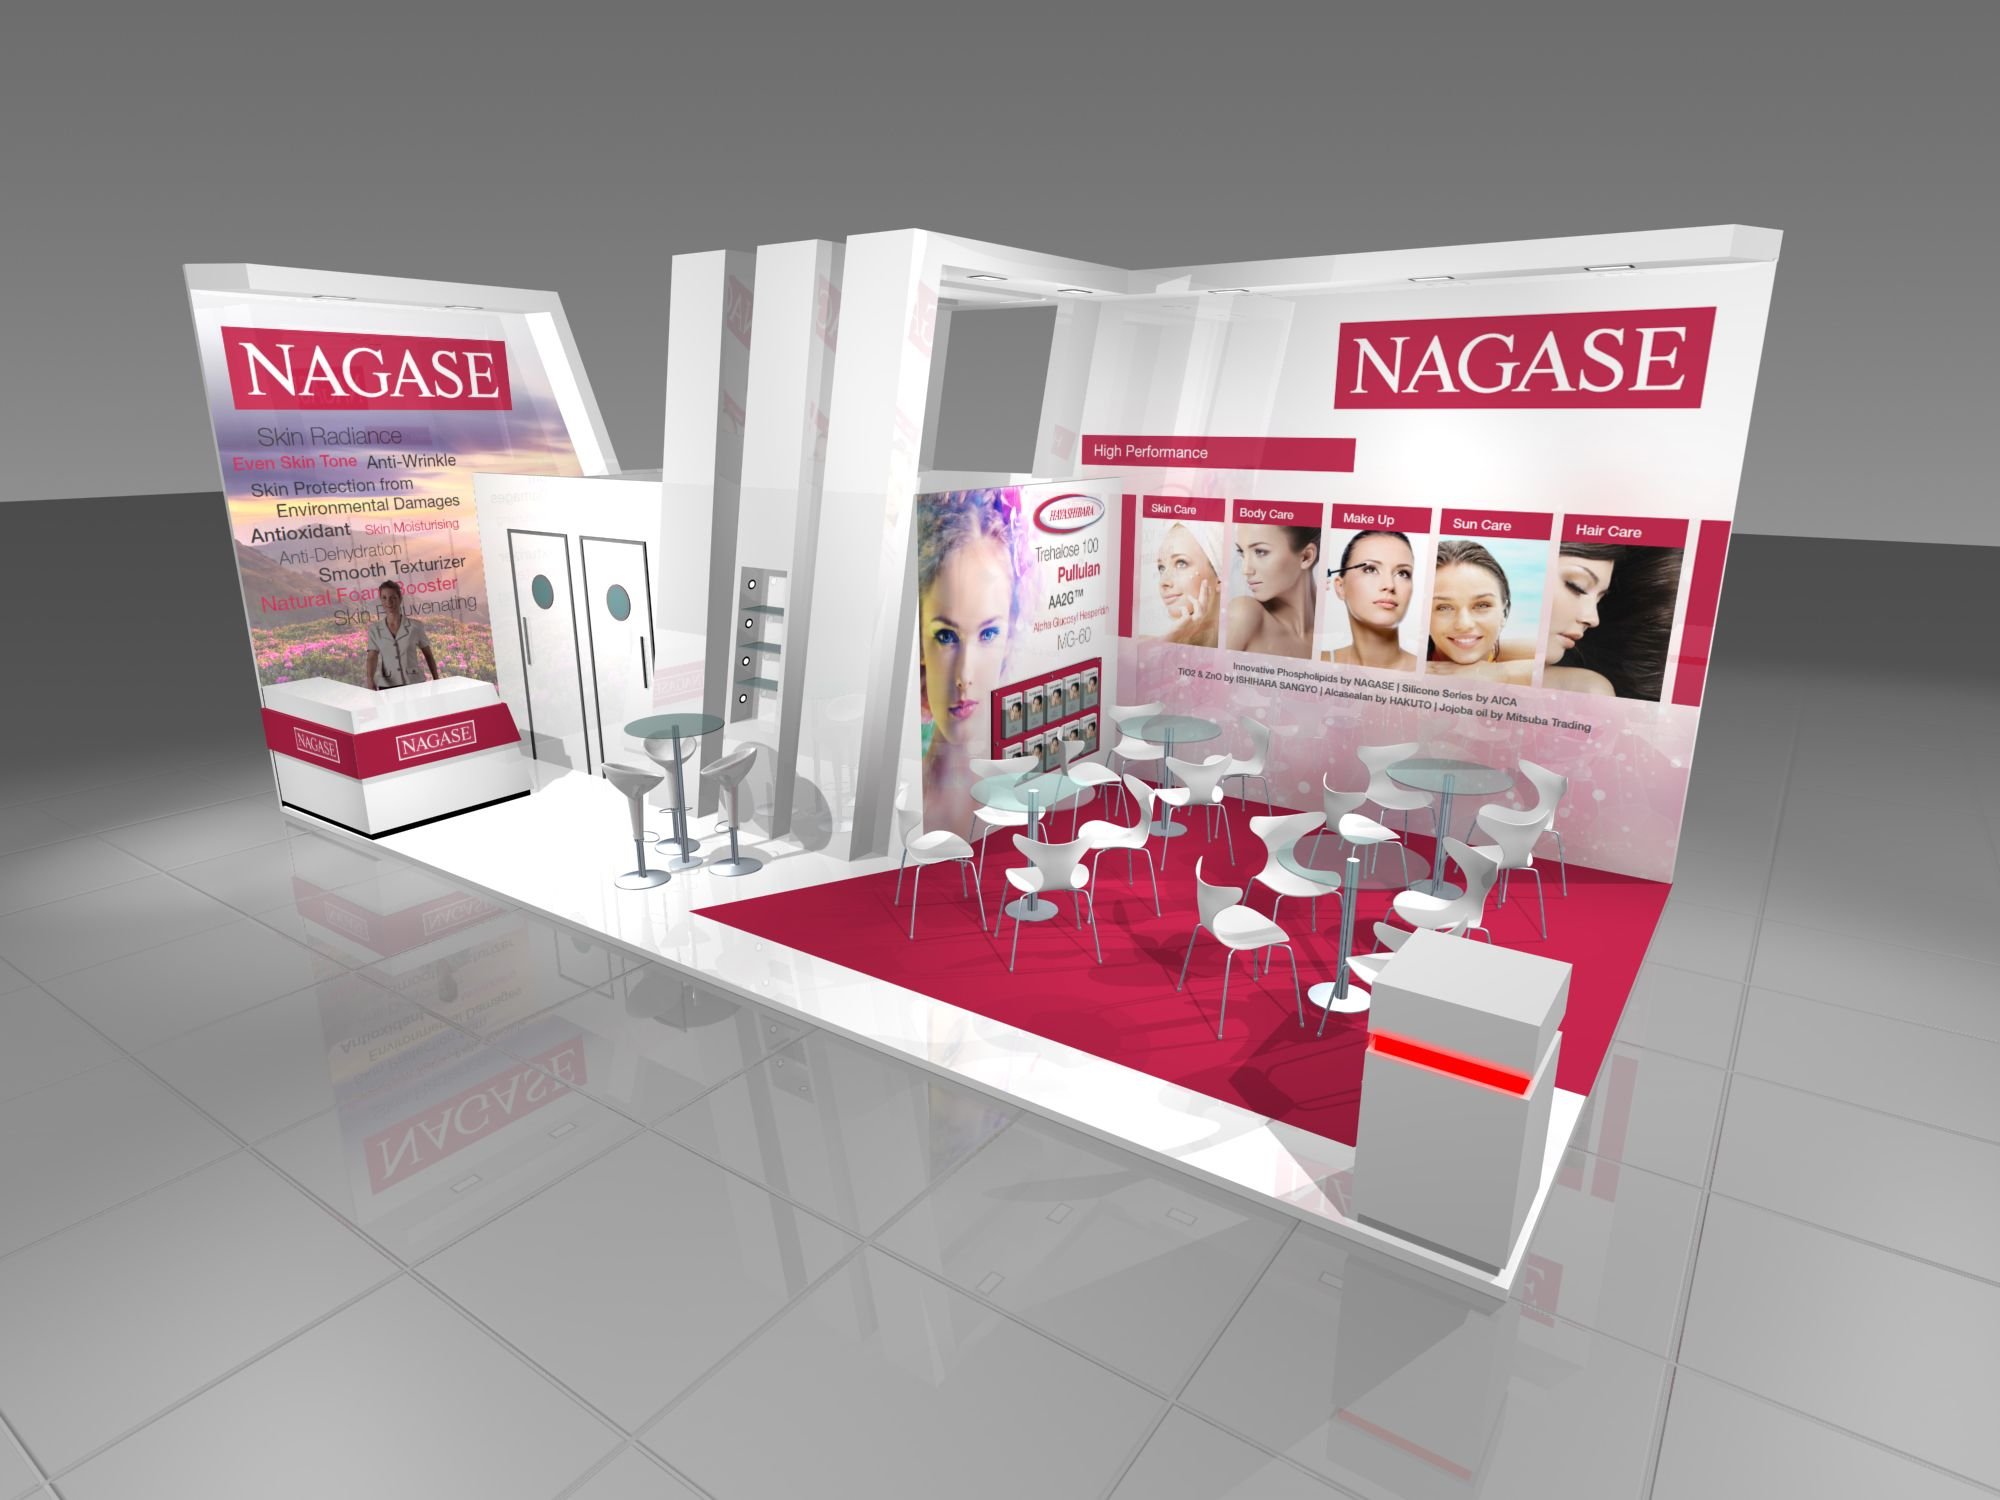 Exhibition Stand Cosmetics : Nagase exhibition stand design render for in cosmetics